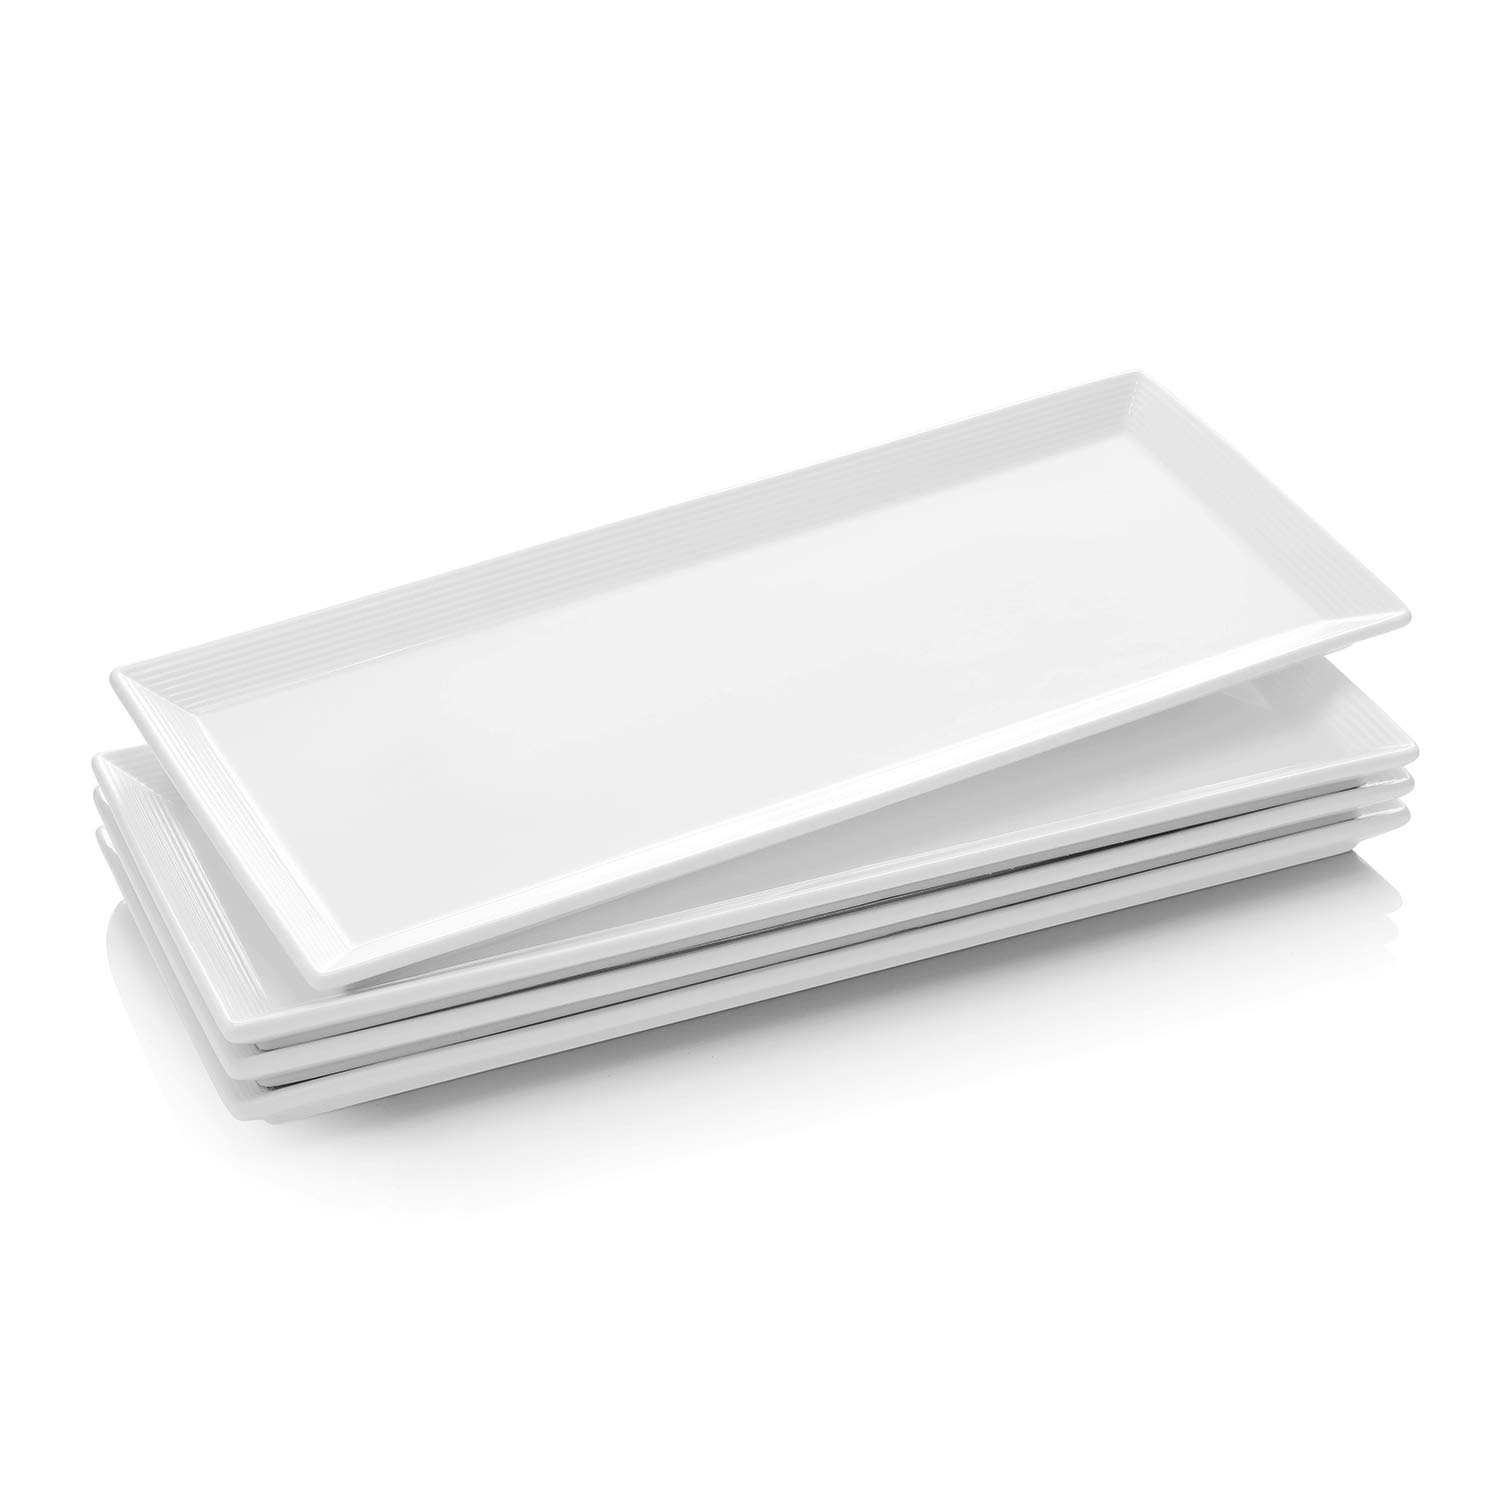 Krockery Large Porcelain Serving Platters/Rectangular Trays for Parties, 14.5 Inch, Set of 4